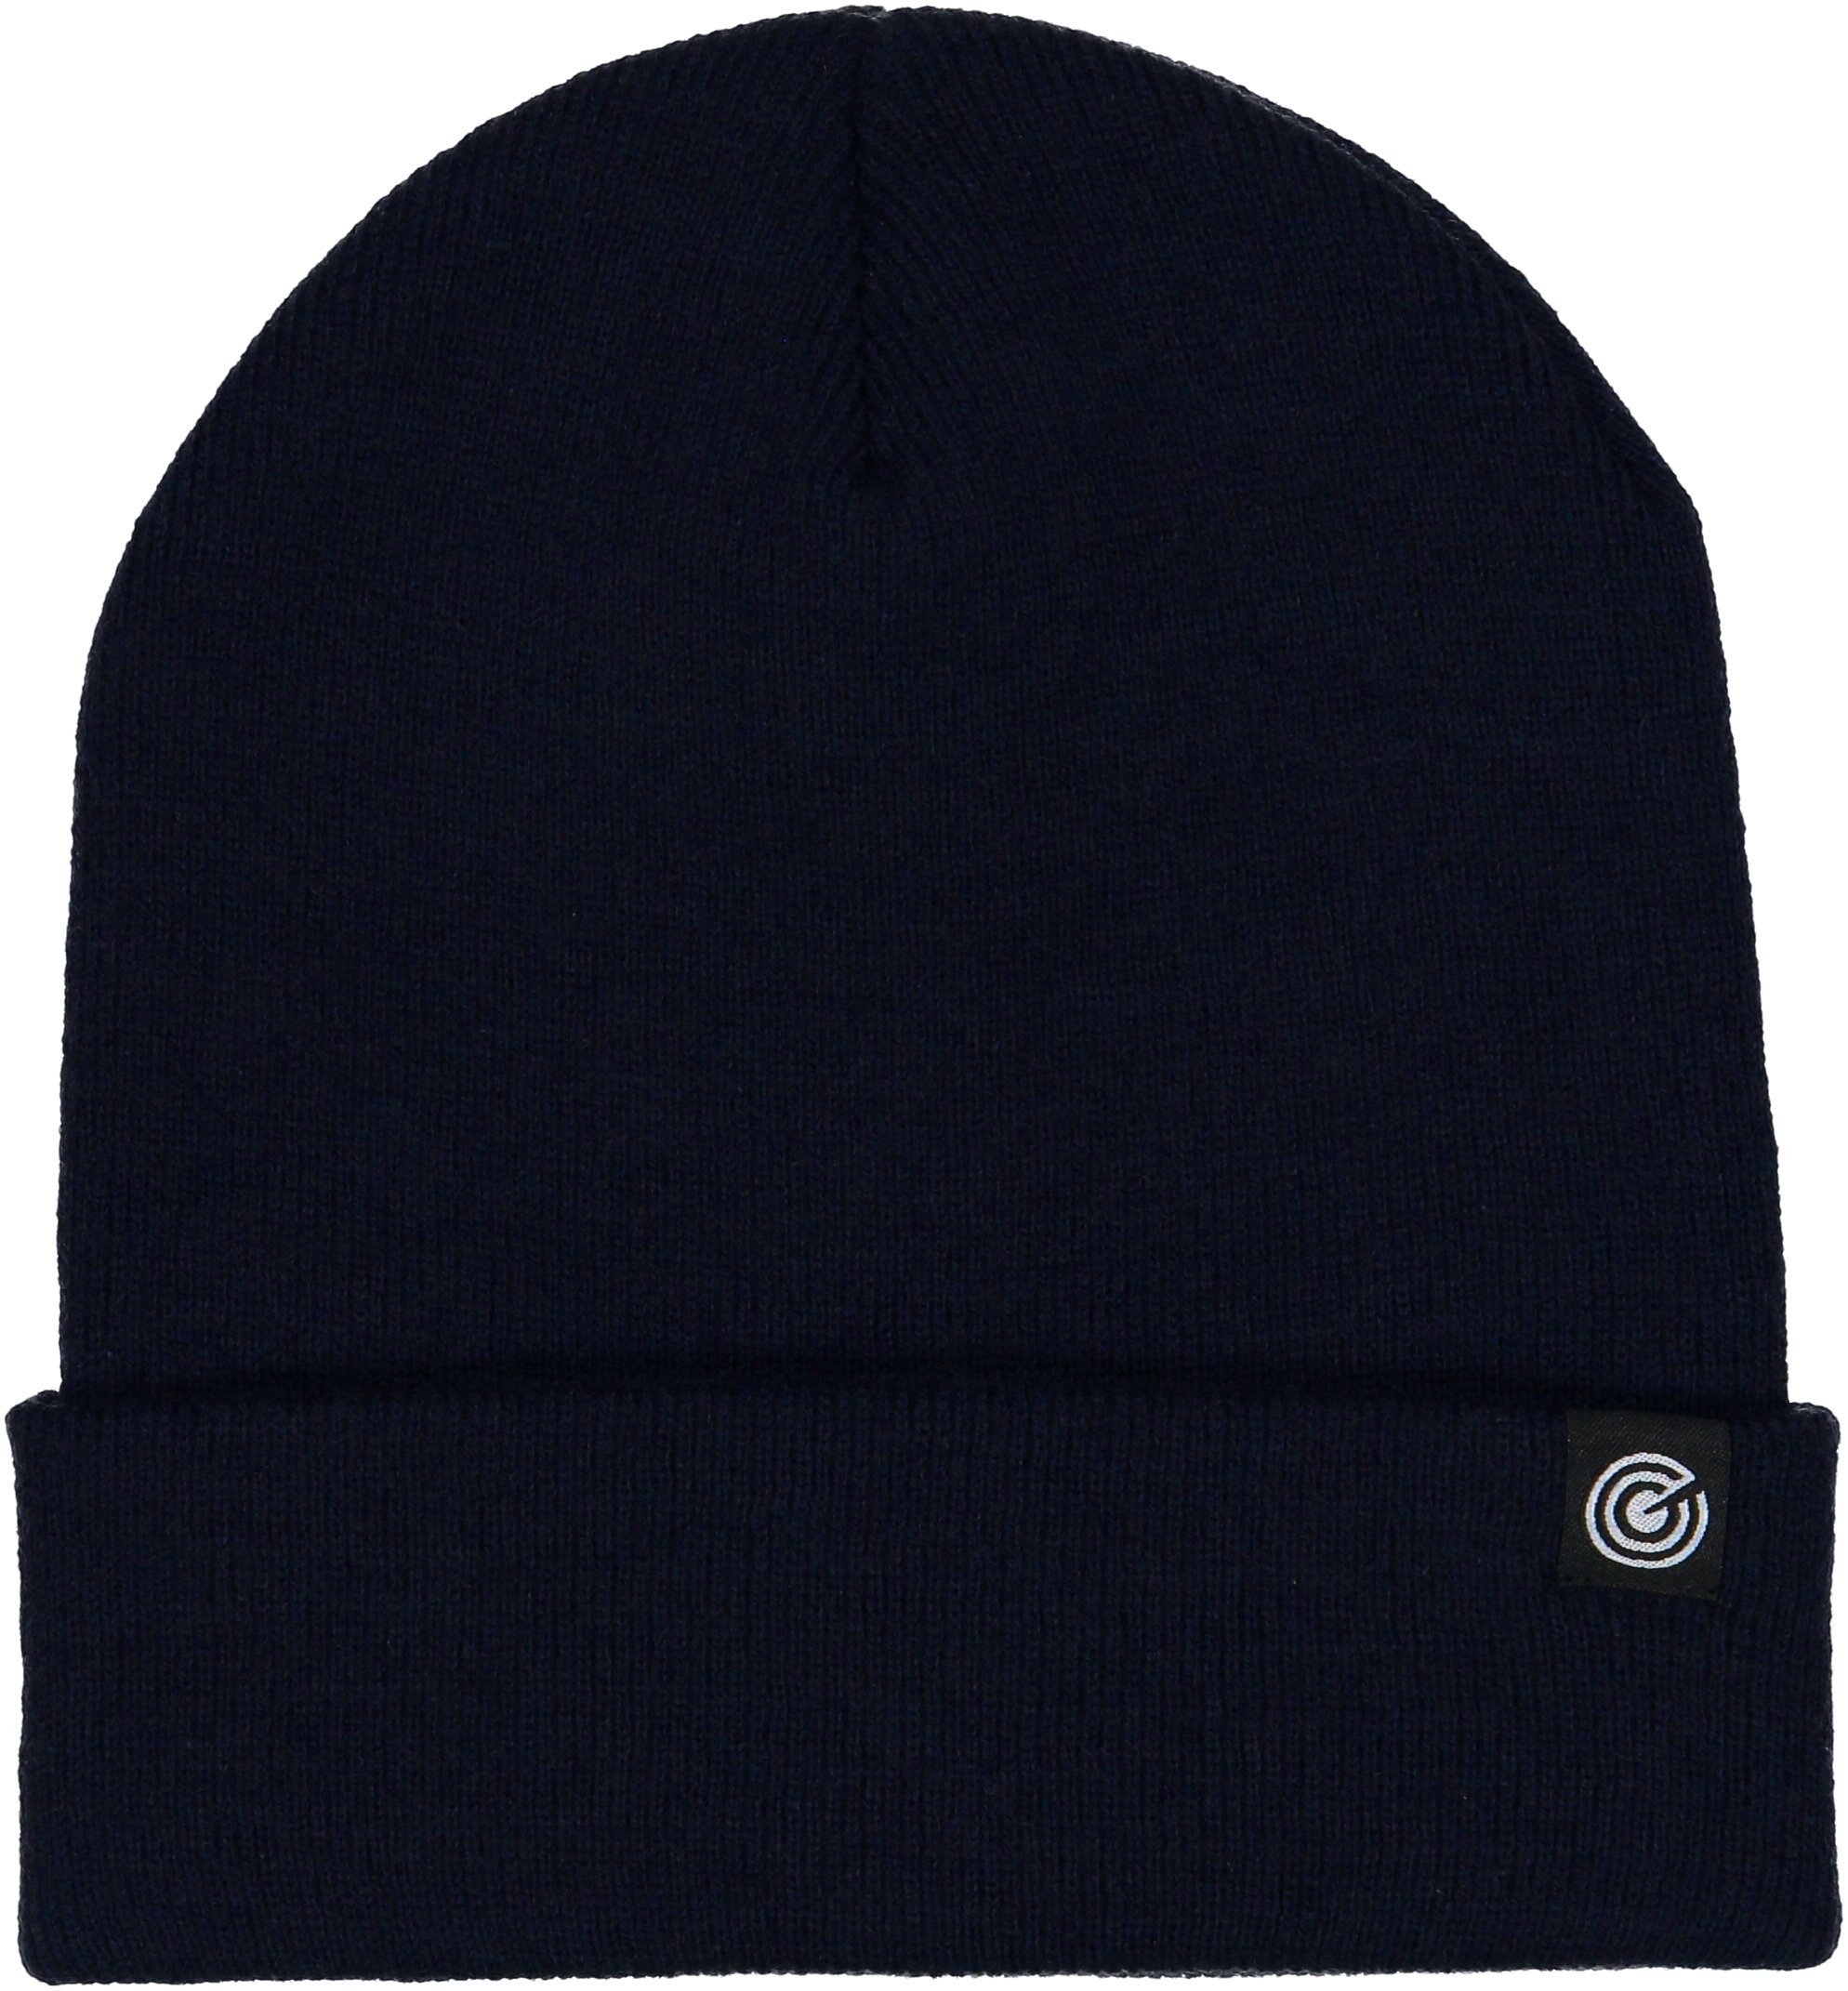 Cuffed Beanie - Warm Daily Beanie Hat with Foldover Cuff - Stylish Winter Colors,Navy,One Size